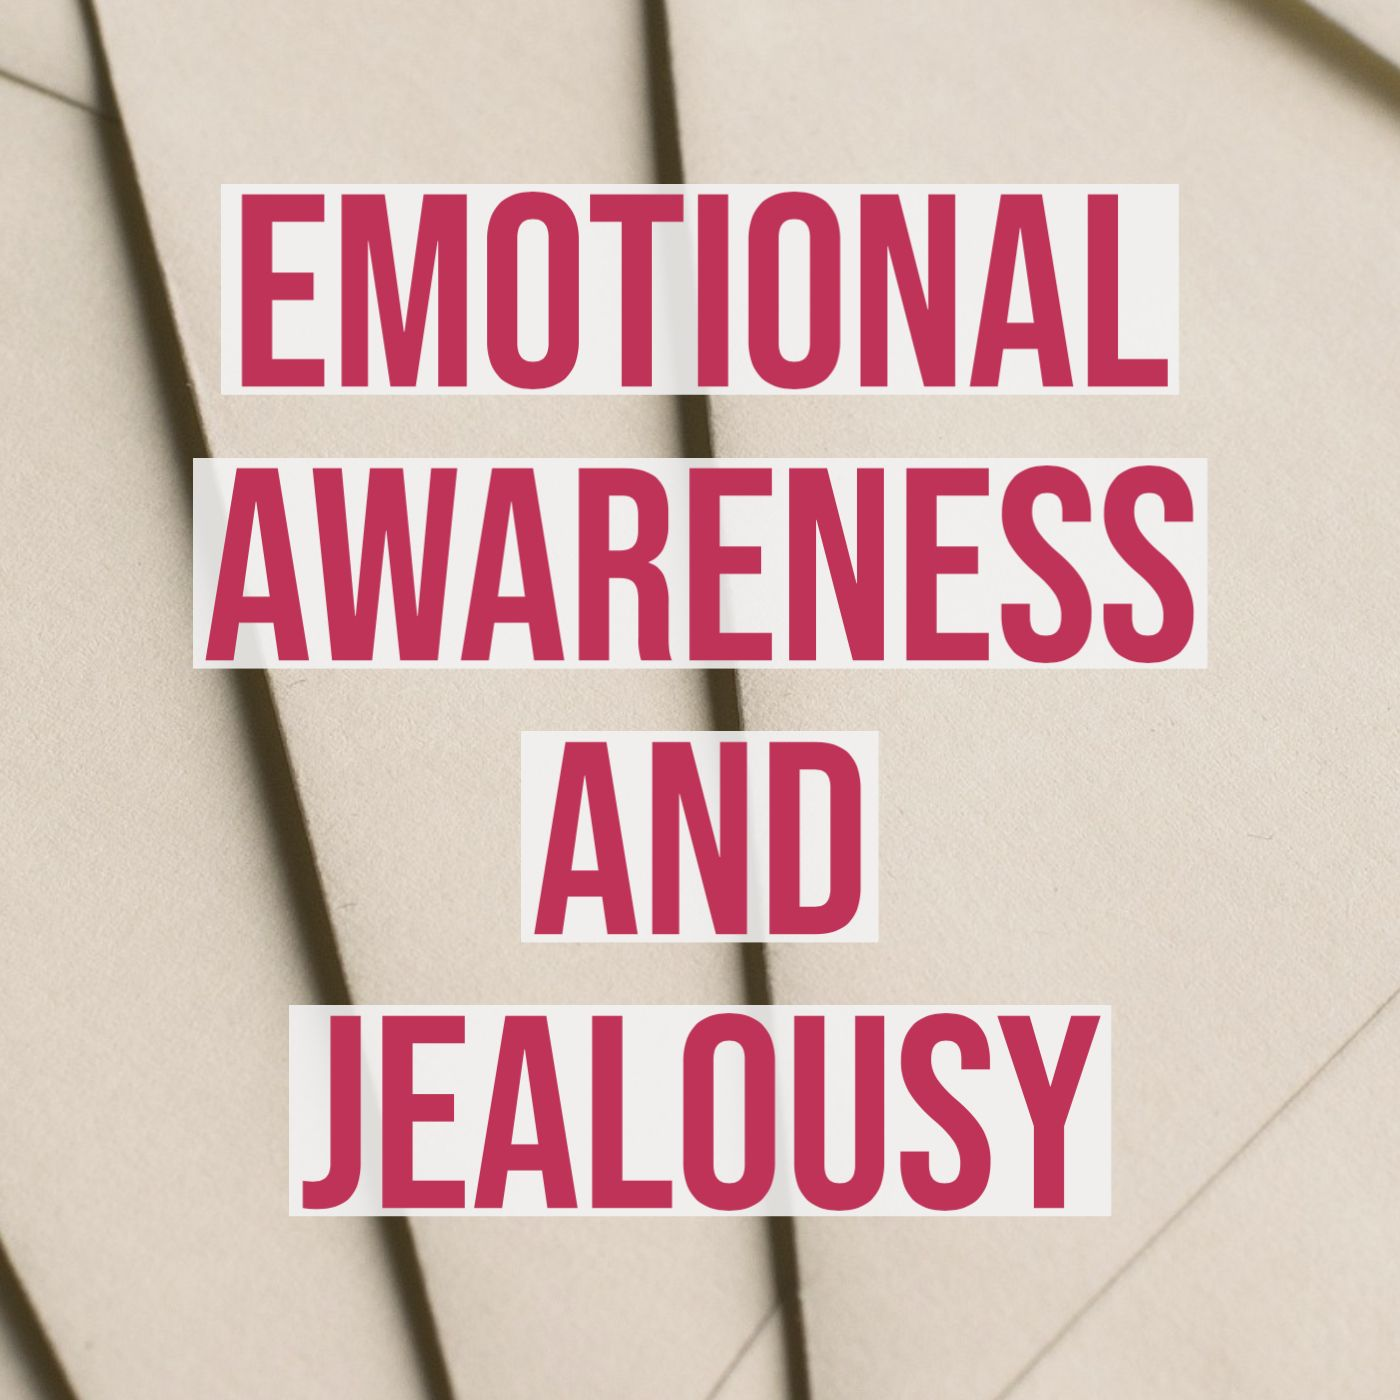 Emotional Awareness and Jealousy